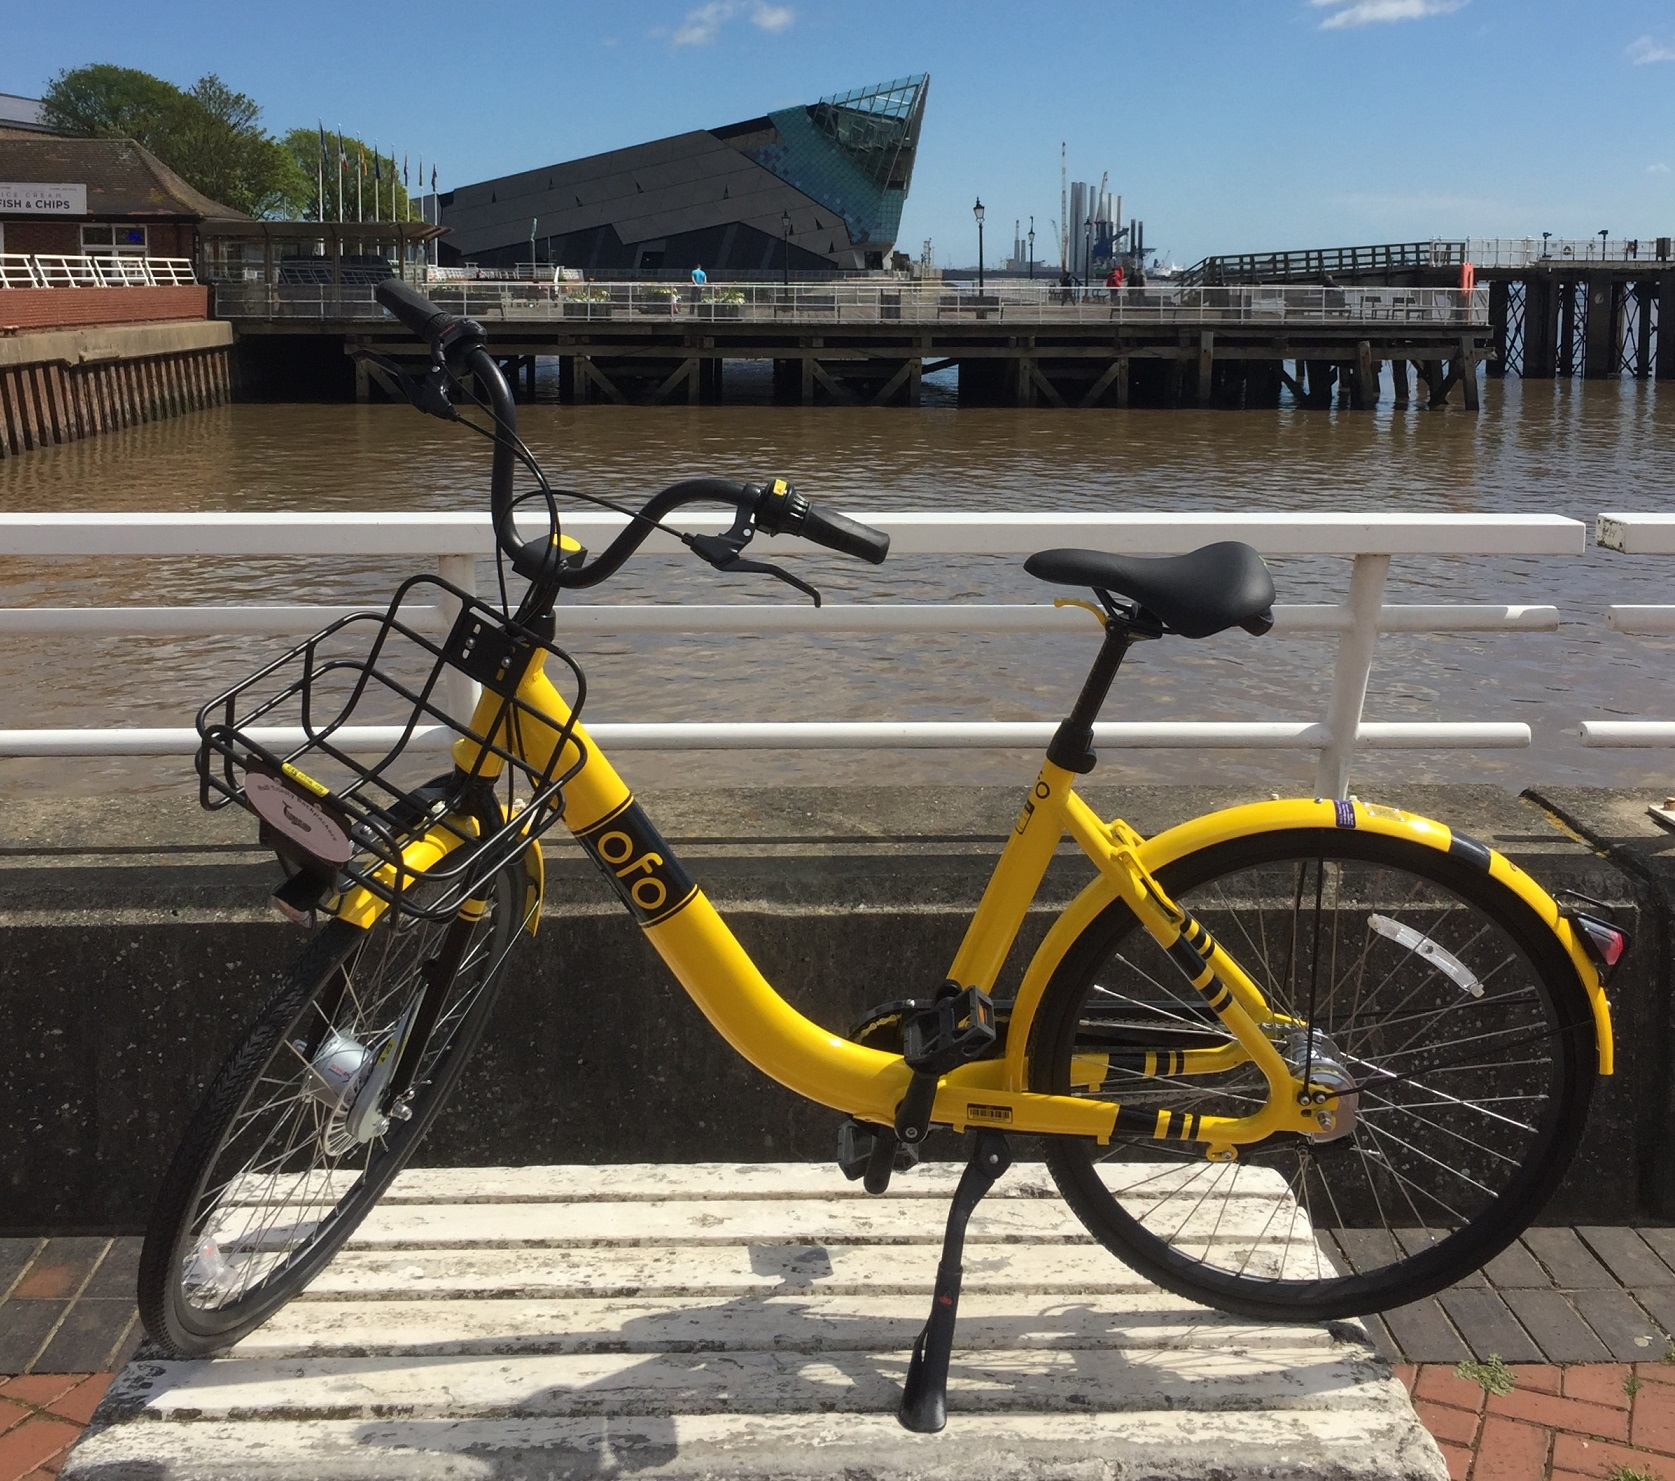 One of the bikes available for rental at Hull Trinity Backpackers.